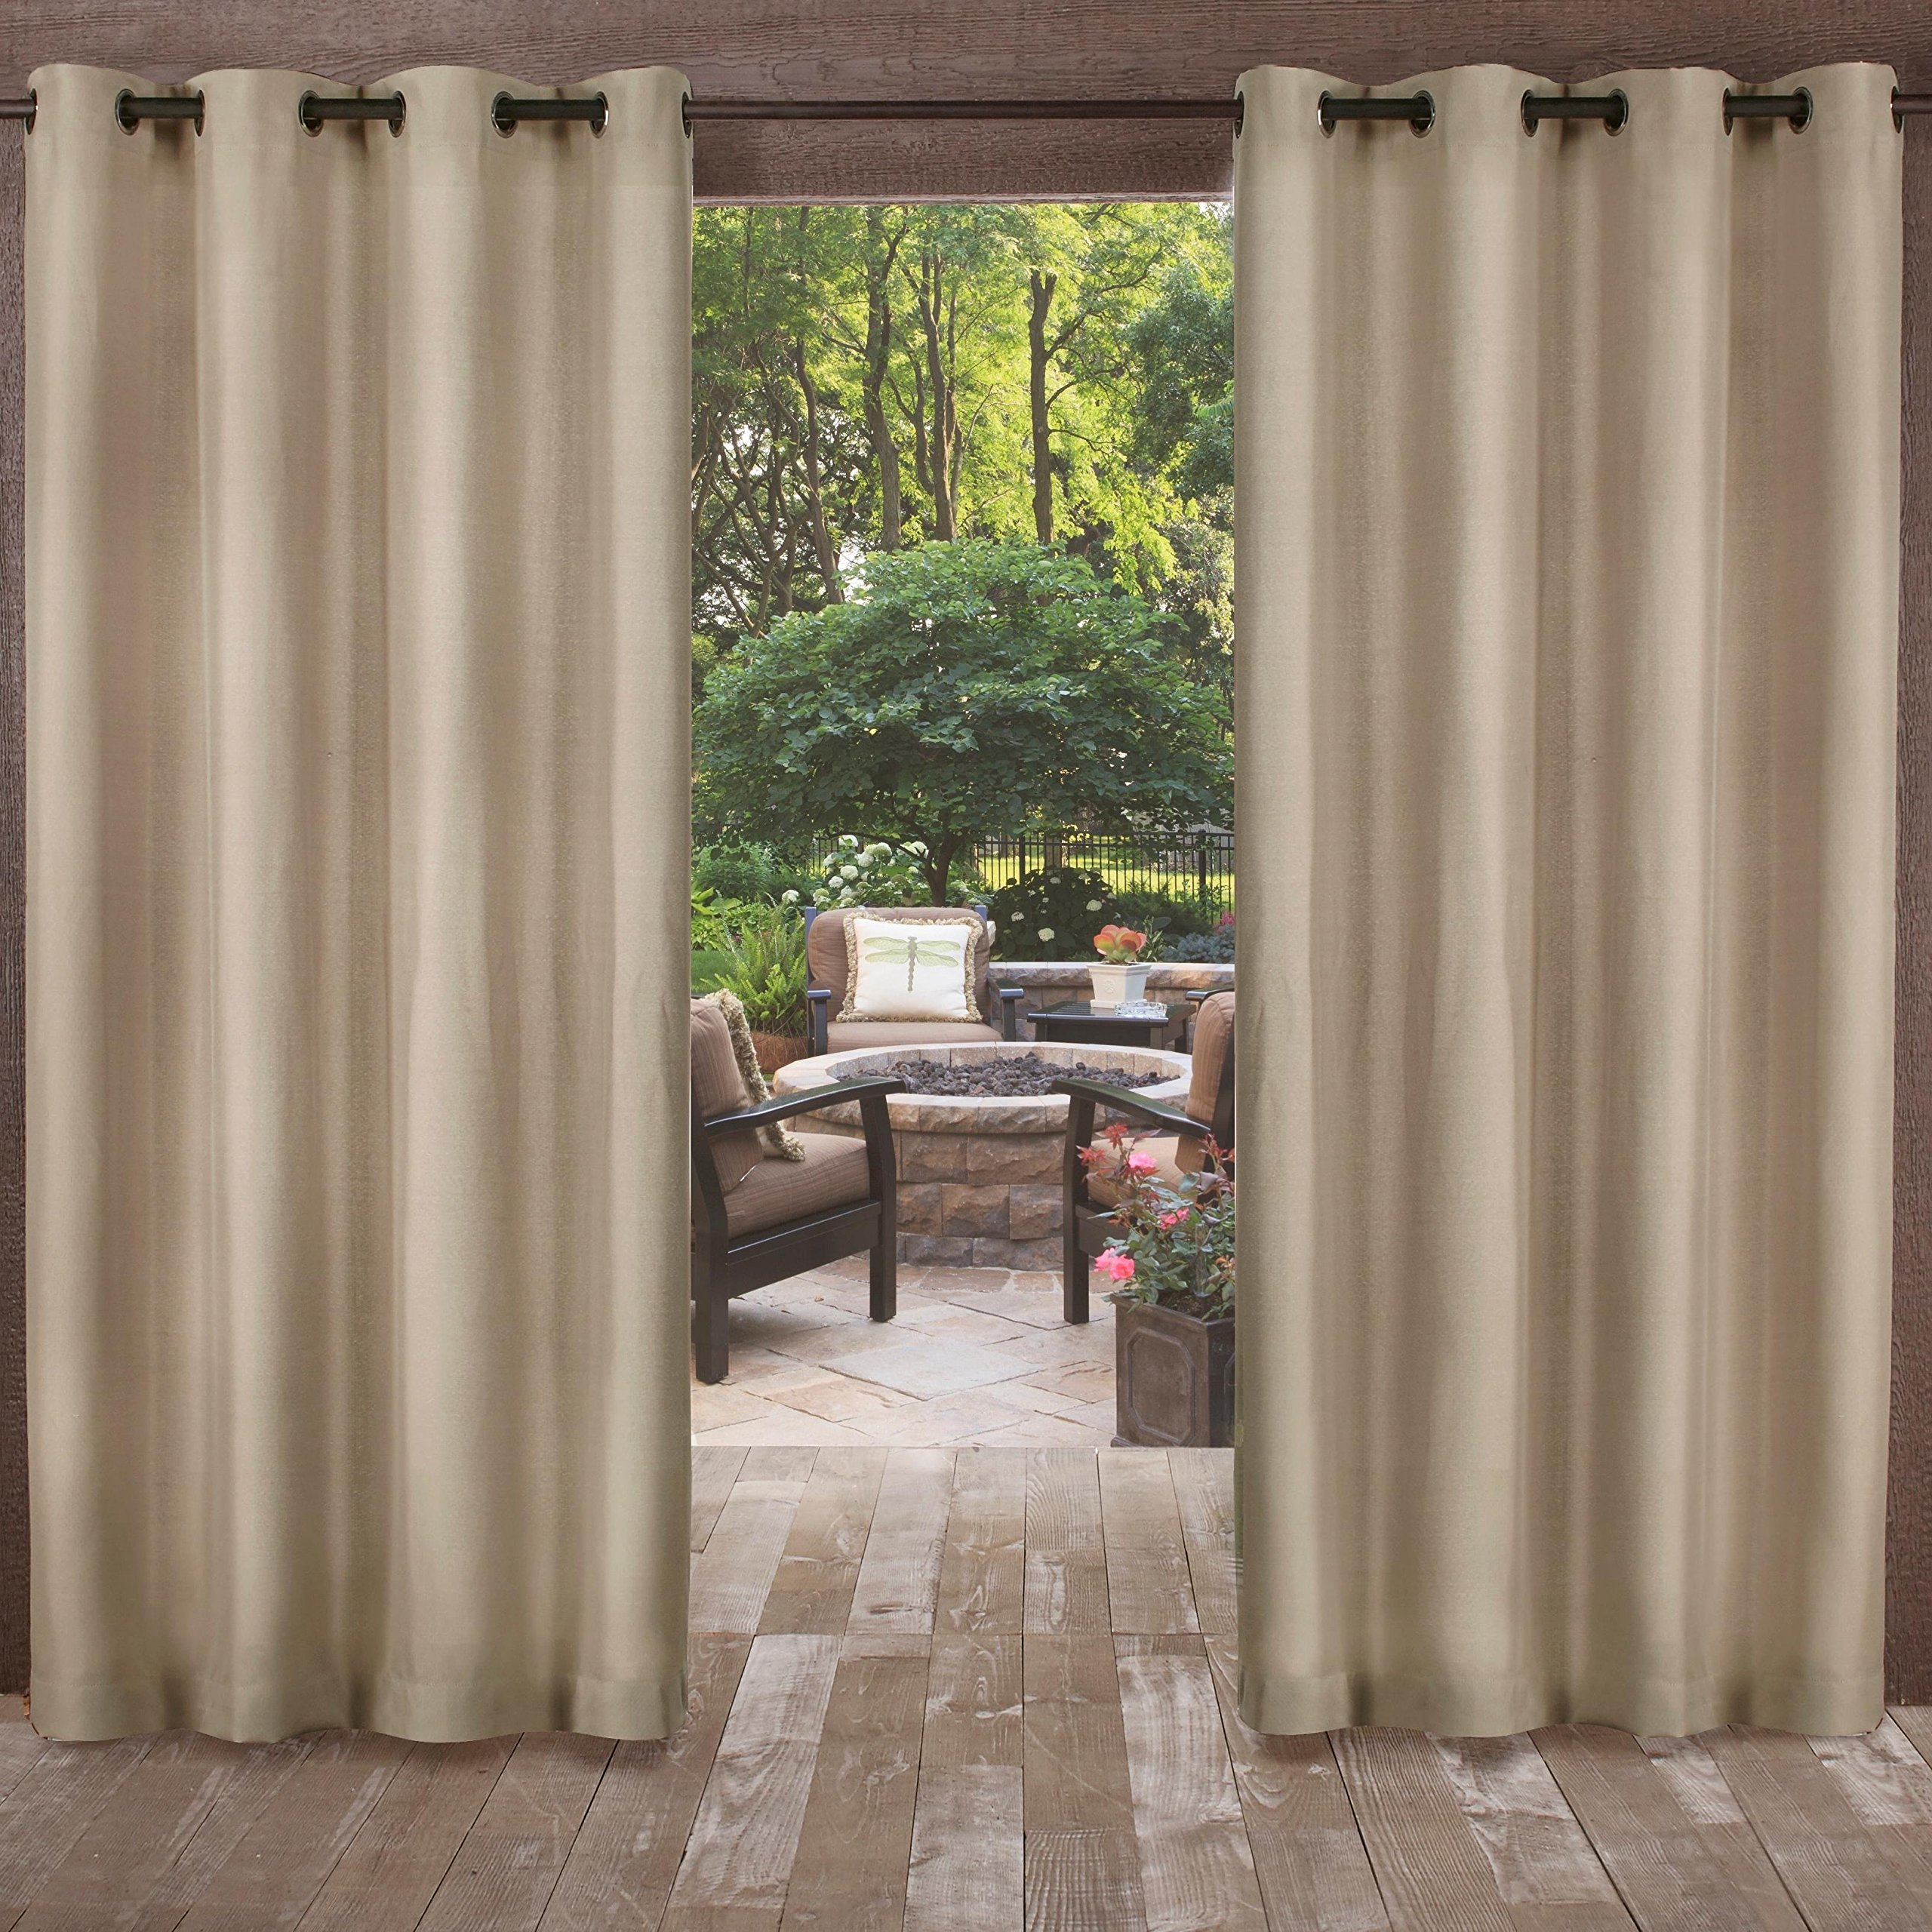 UK4 2 Piece 96 Inch Natural Indoor Outdoor Two Tone Textured Gazebo Curtain, Light Brown Window Treatment Panel Pair, Patio Porch Cabana Dock Grommet Top Pergola Drapes, Casual Contemporary Polyester